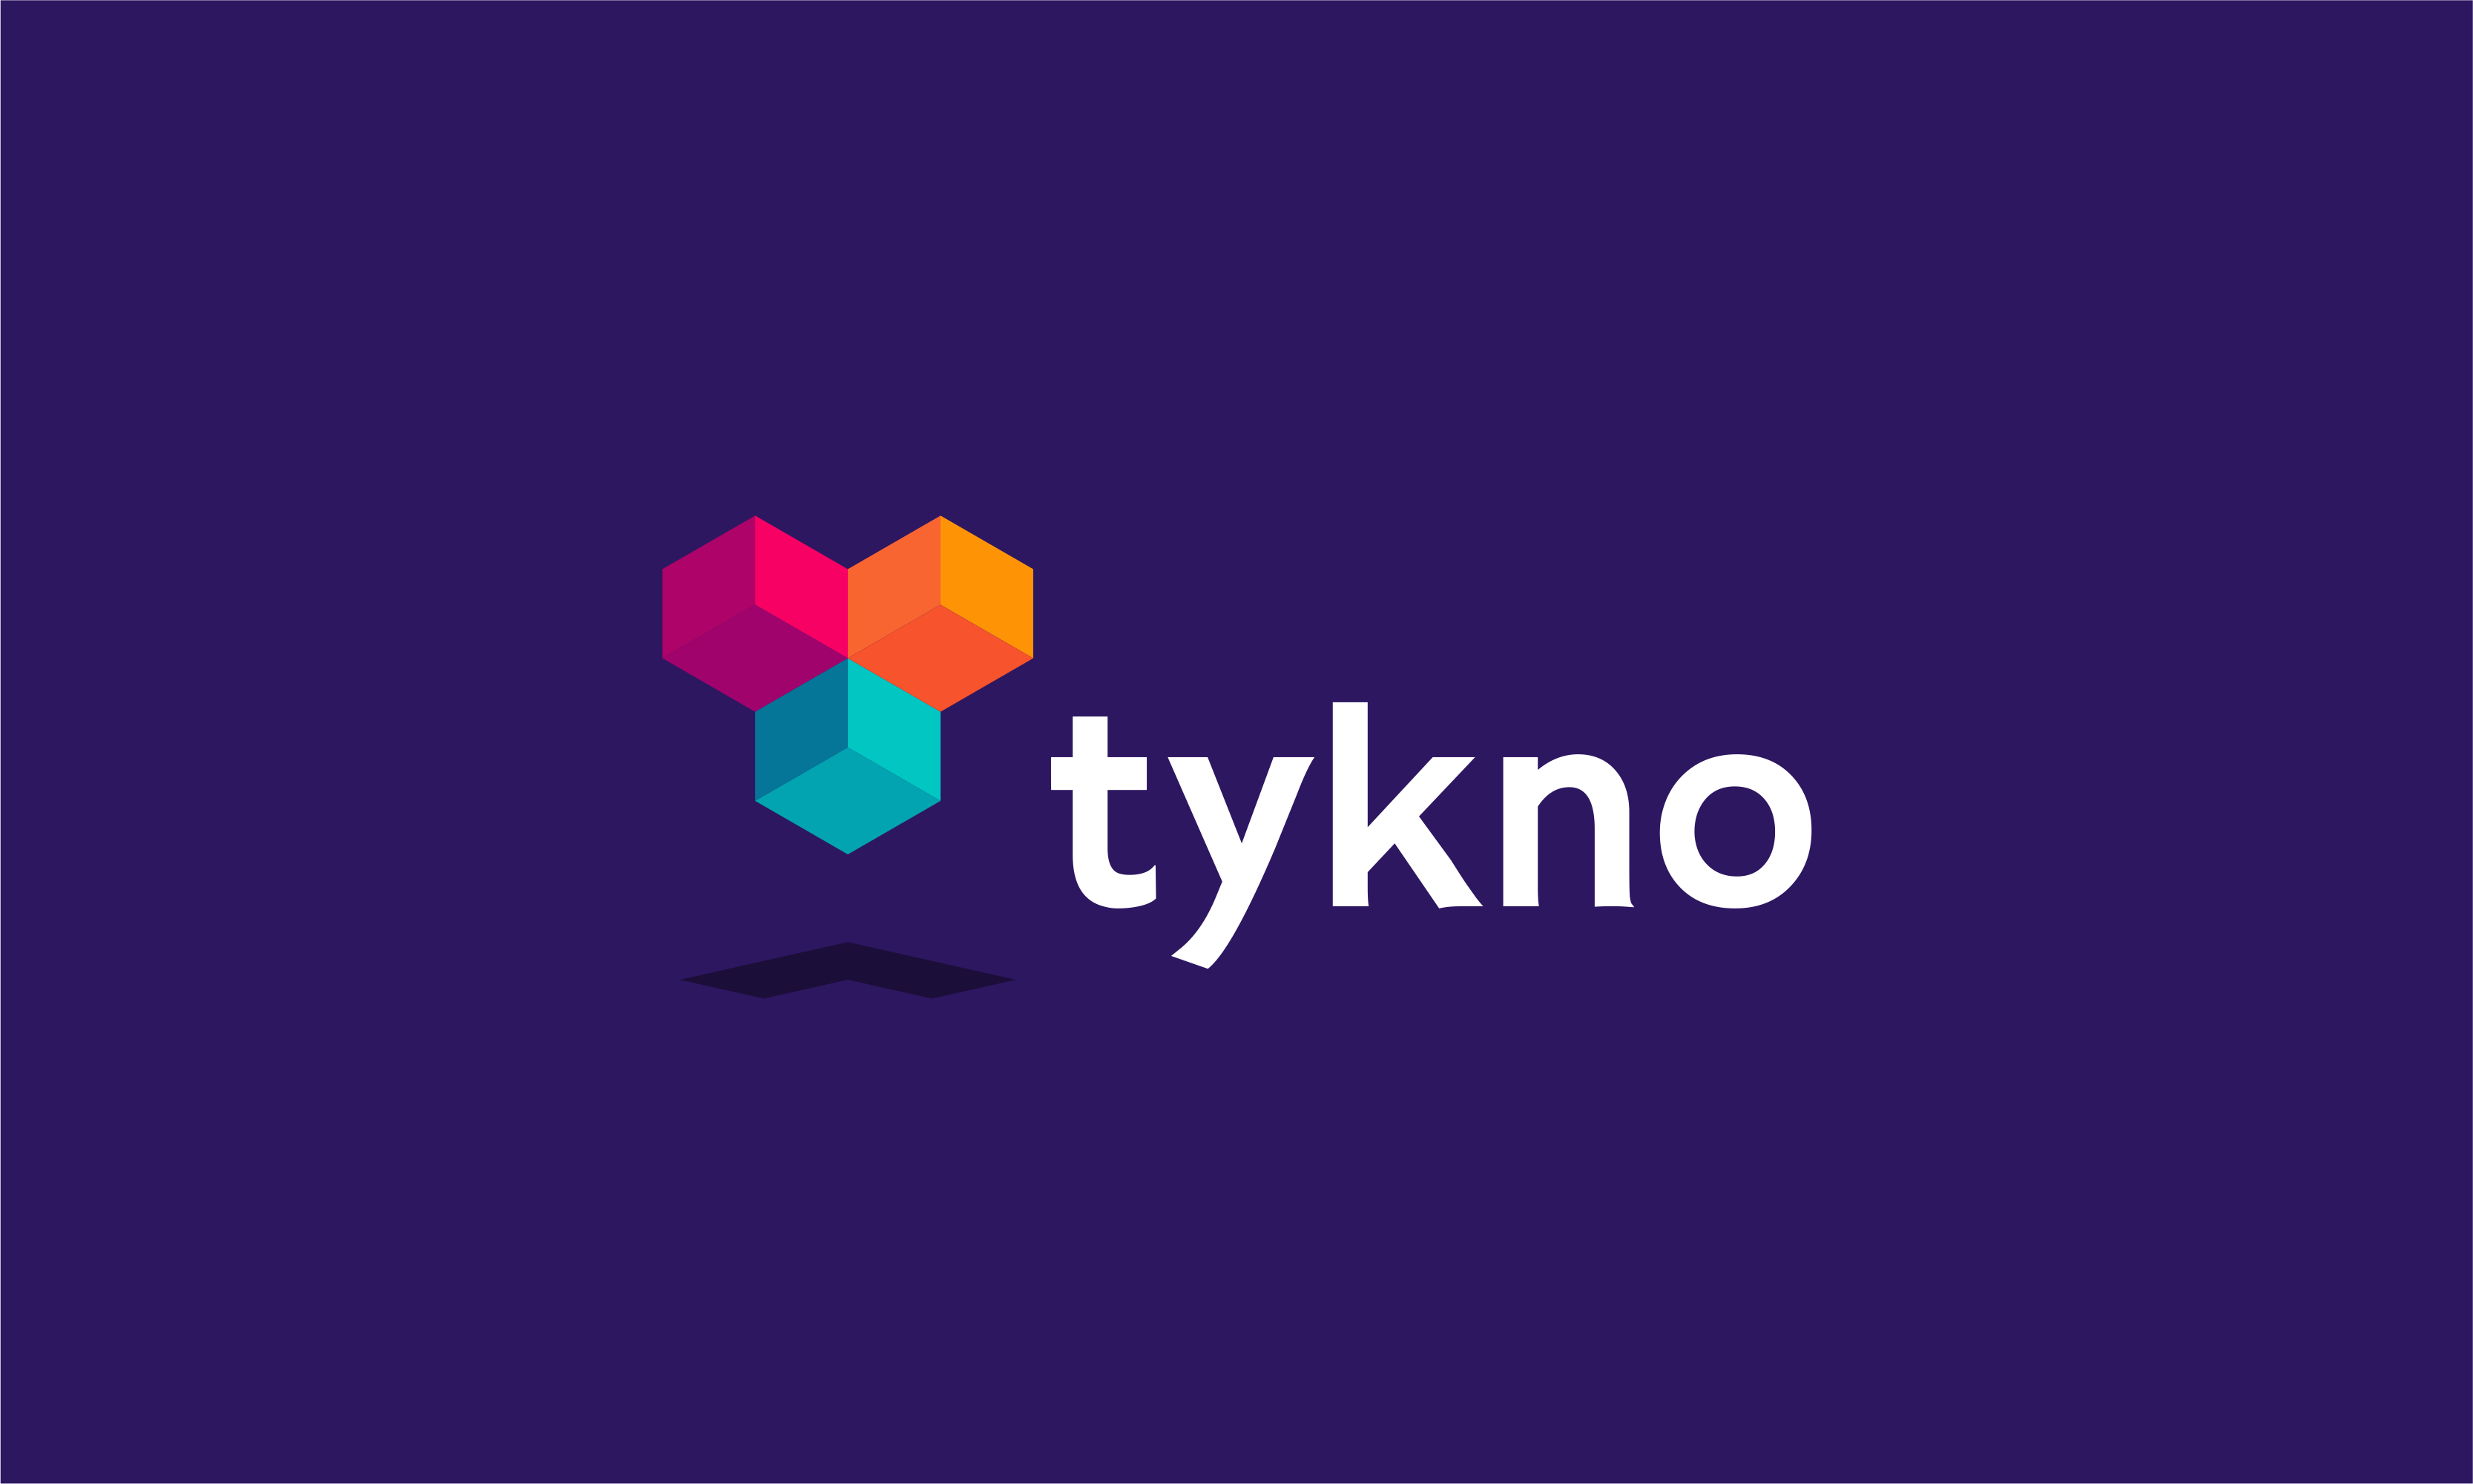 Tykno - Invented business name for sale